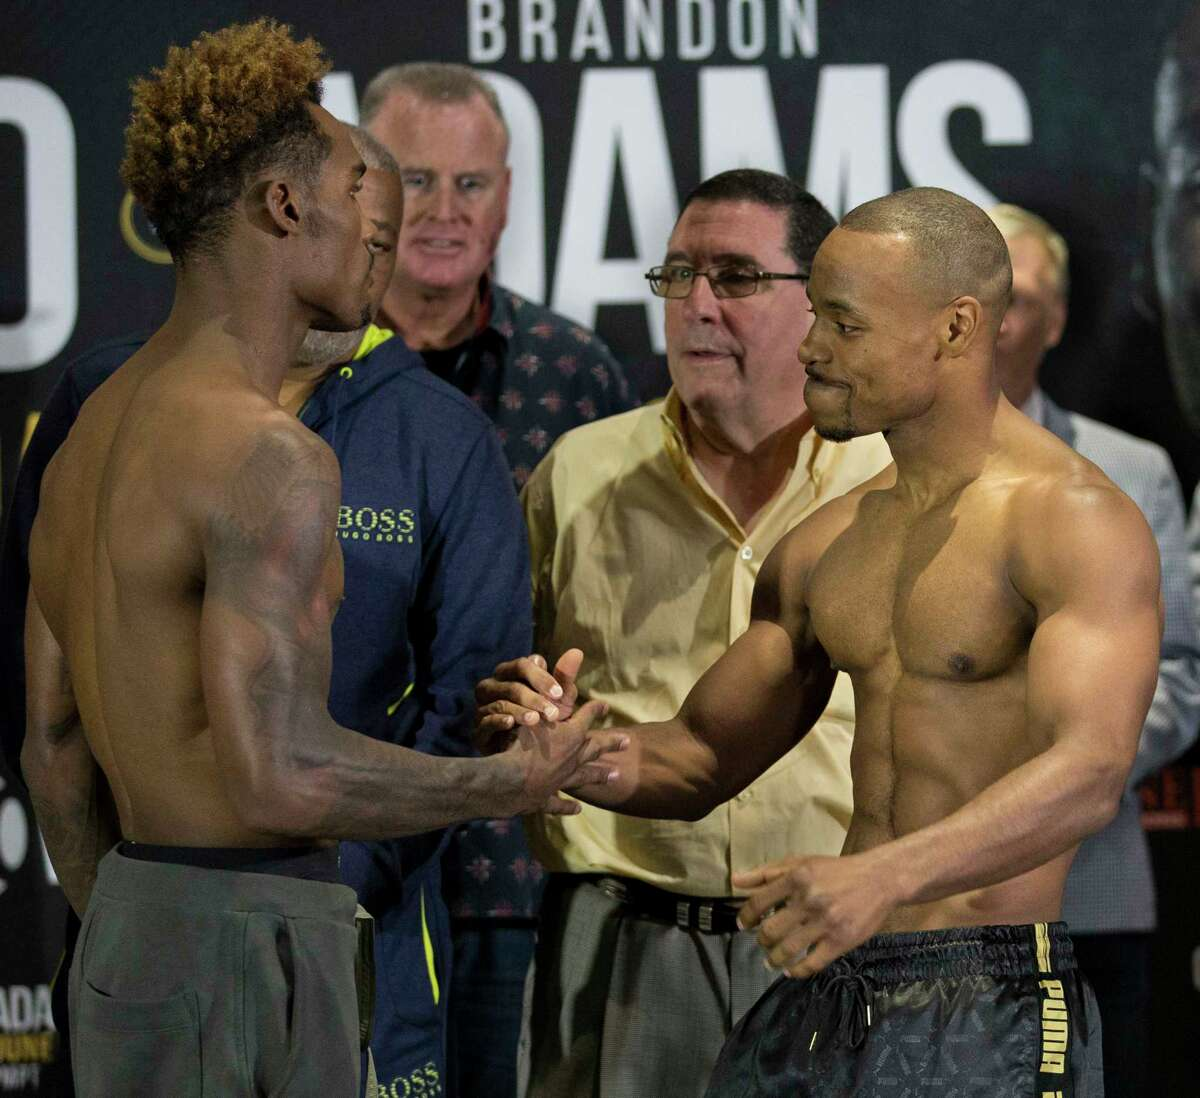 WBC middleweight challenger Brandon Adams, right, gives unbeaten interim champion Jermall Charlo a hug after stare-down at NRG Center on Friday, June 28, 2019, in Houston. The two will fight each other 12 rounds at NRG Arena Saturday night.